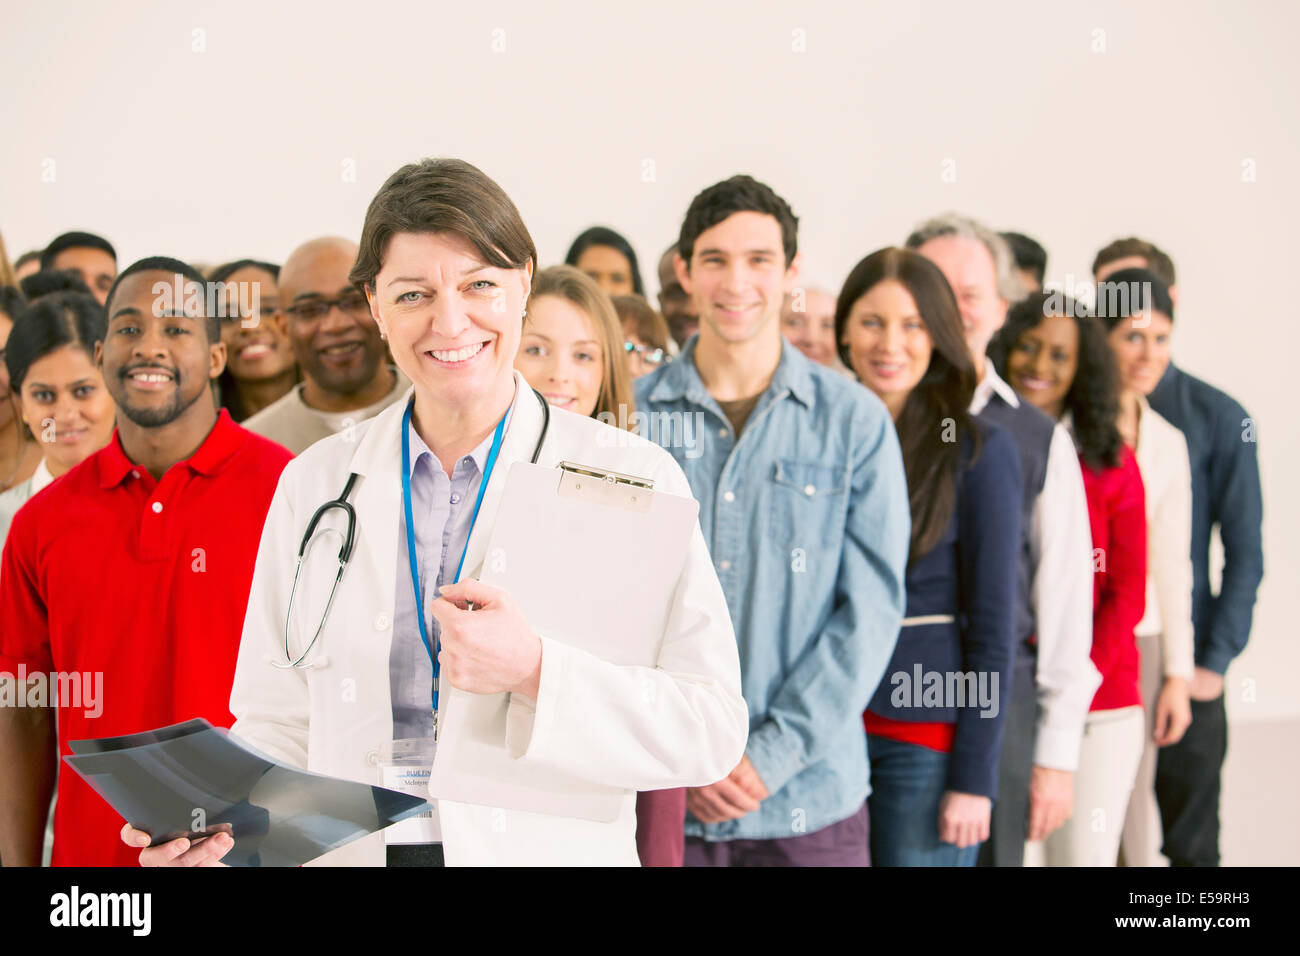 Crowd behind confident doctor - Stock Image